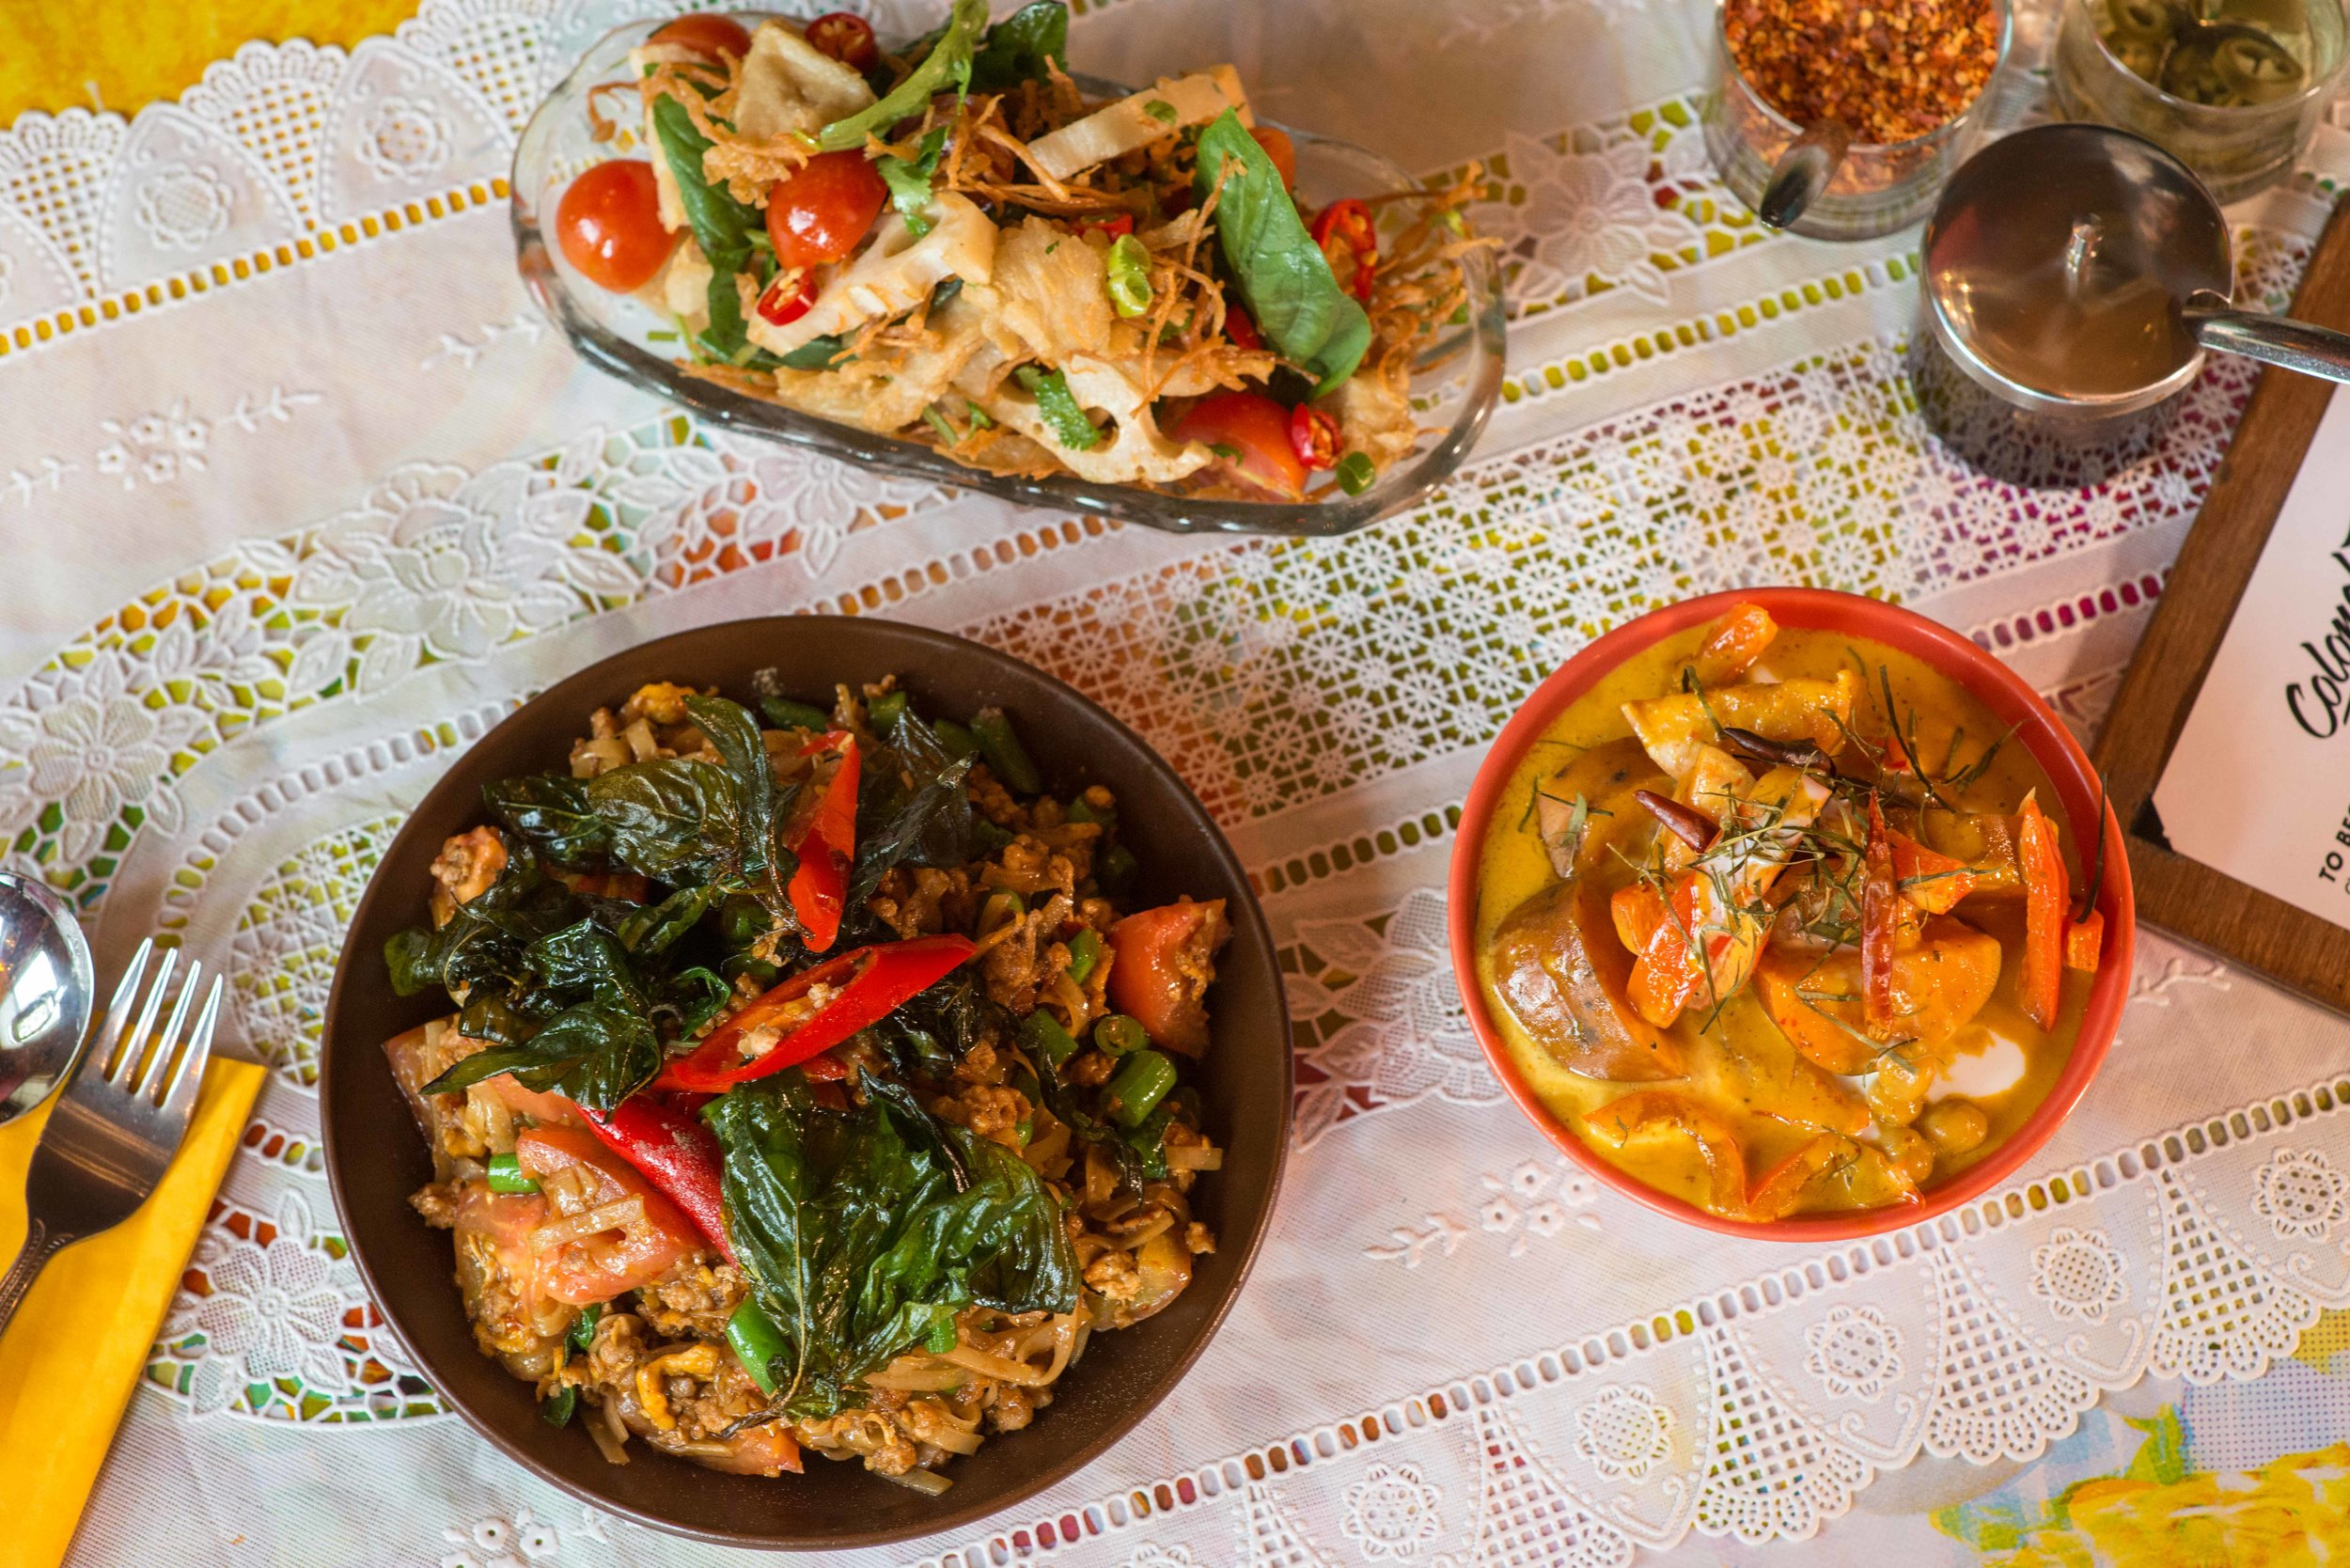 For groups of 12 and over, we offer our Banquet Menu.The Menu is Thai inspired and designed to share, which is the best way to experience food at Colonel Tan's!Decide if you want One Course or Two and use the format below as a guideline to choose for your group. -